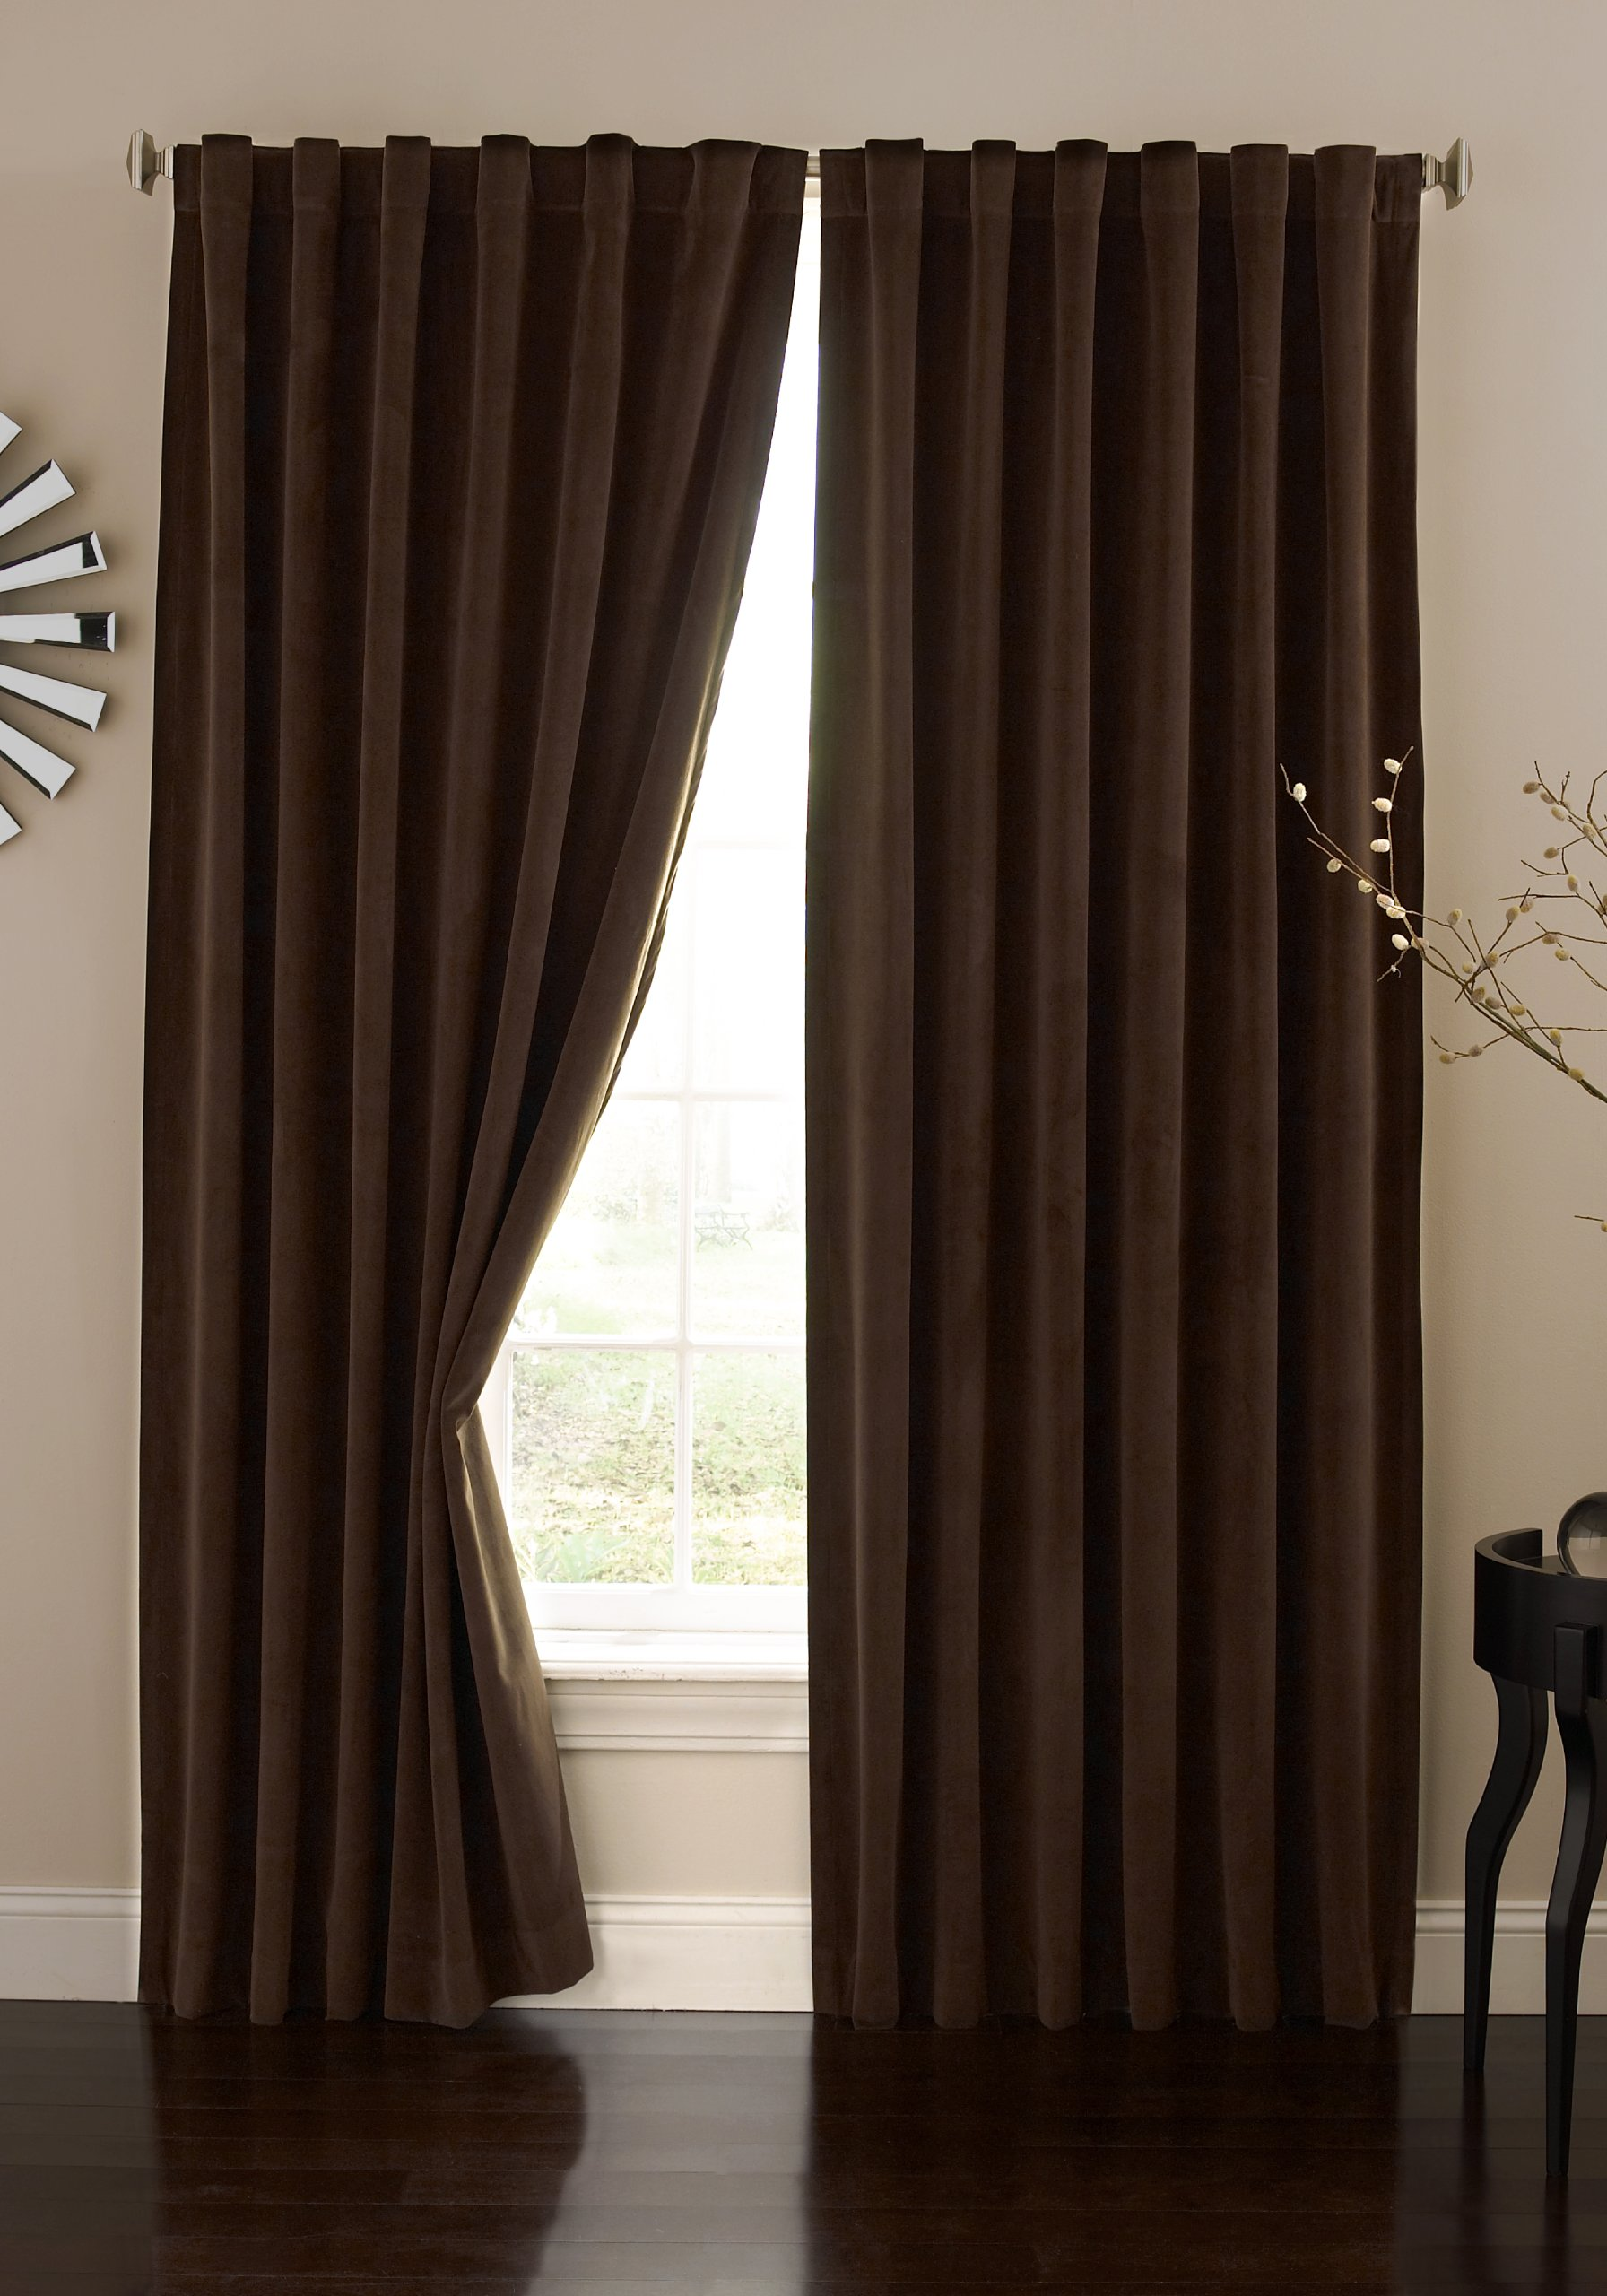 Absolute Zero 11718050X084CH Velvet Blackout Home Theater 50-Inch by 84-Inch Single Curtain Panel, Chocolate